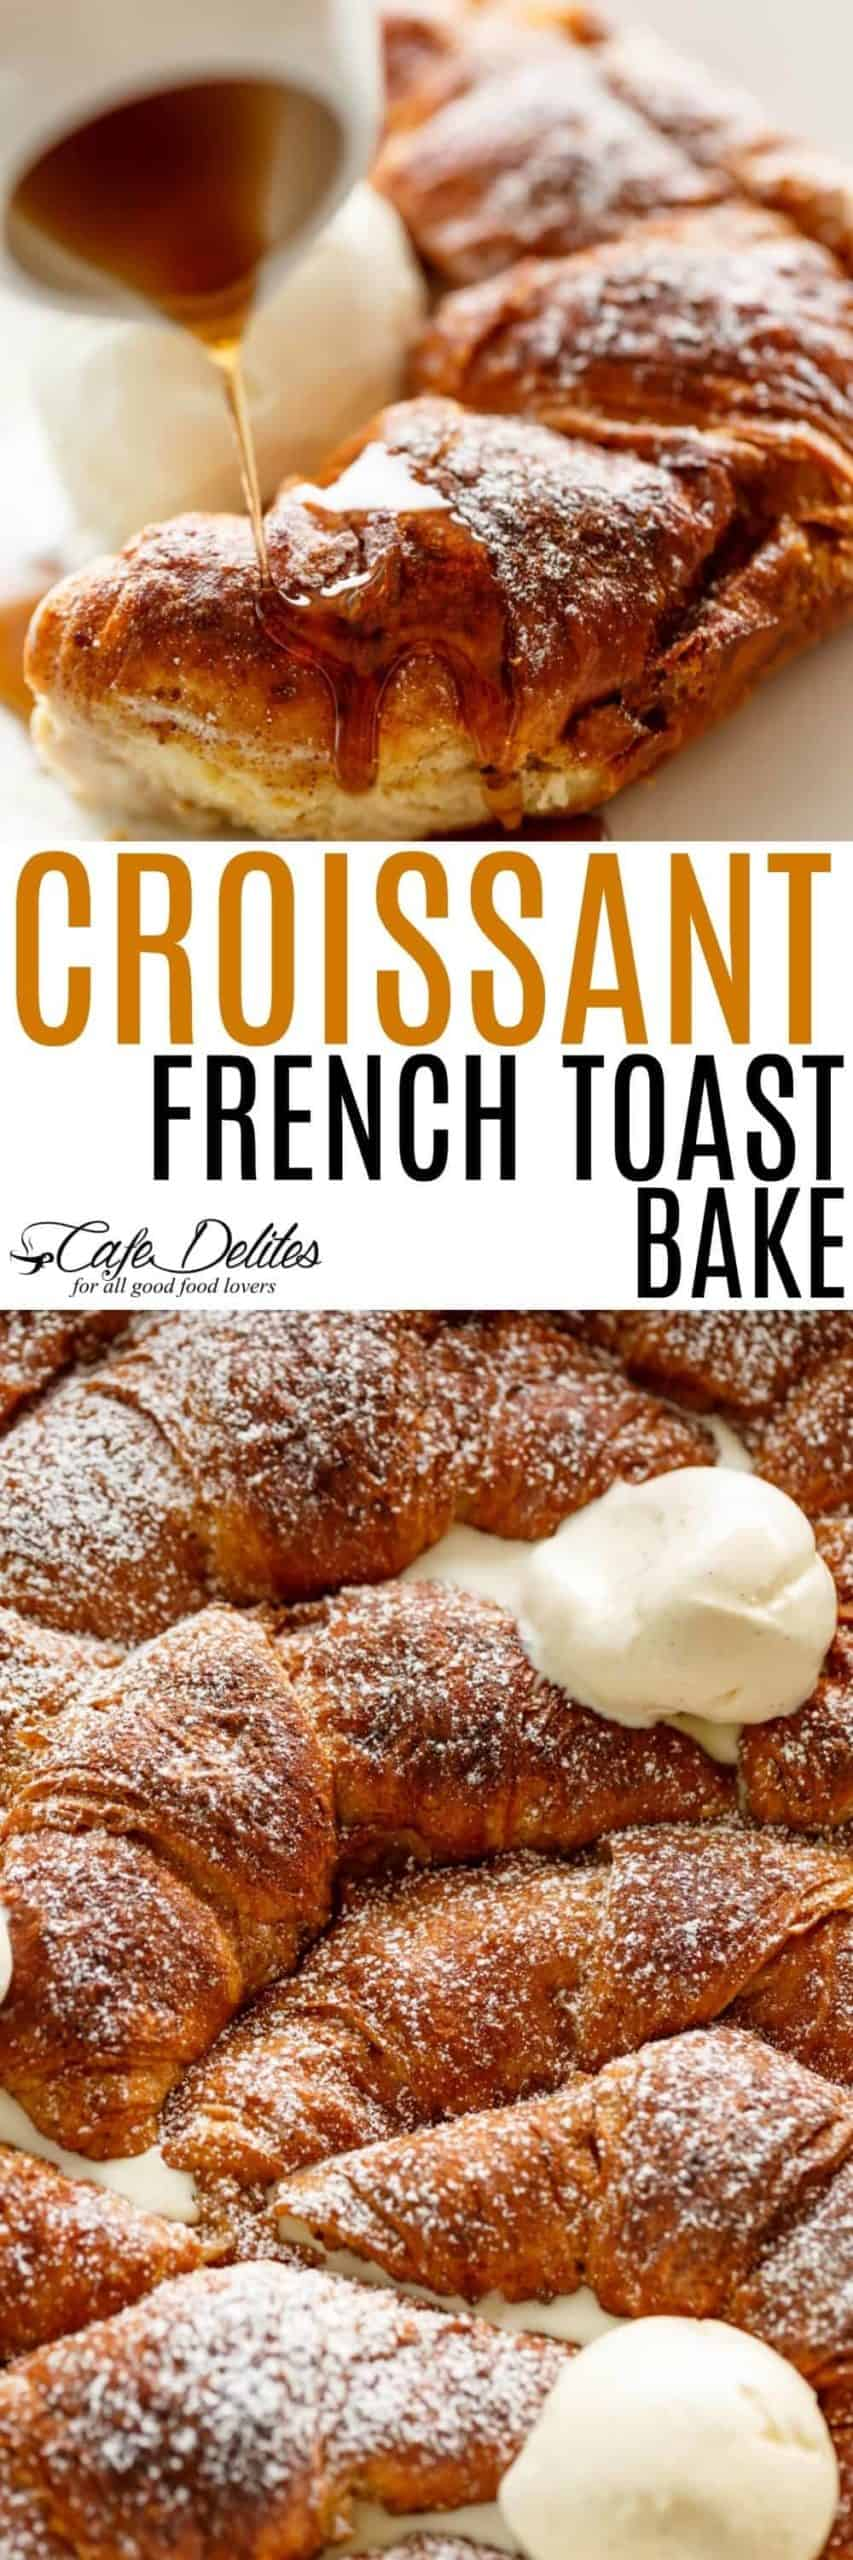 Baked Croissant French Toast | cafedelites.com